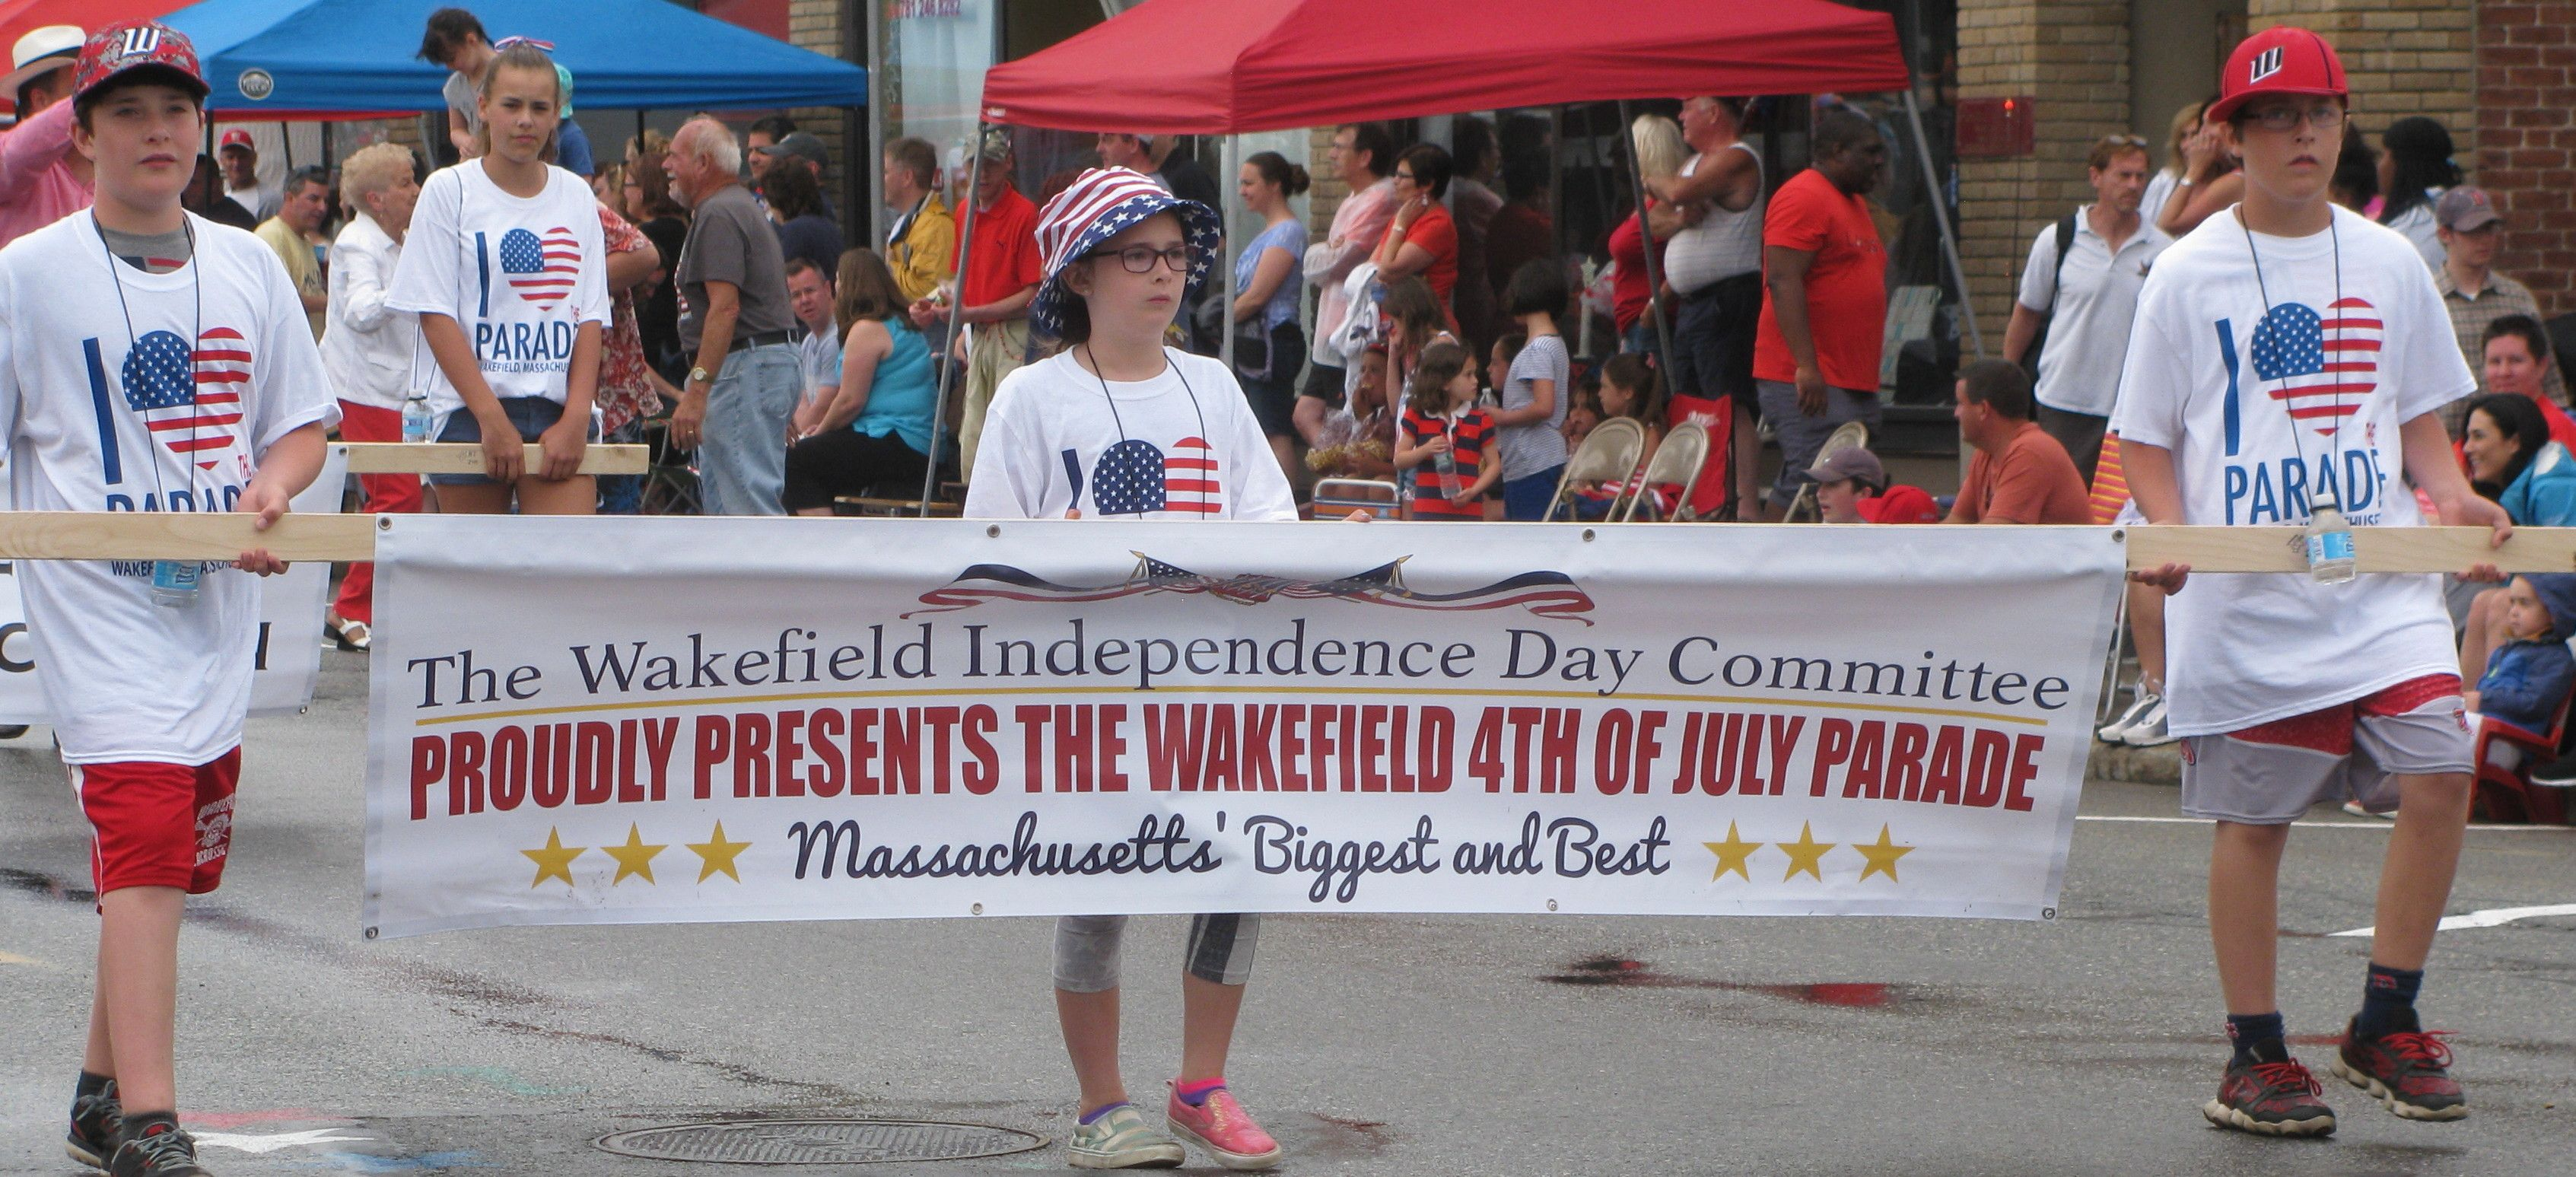 July 4, 2016 The Magic Begins Again! | The Wakefield Independence Day Committee